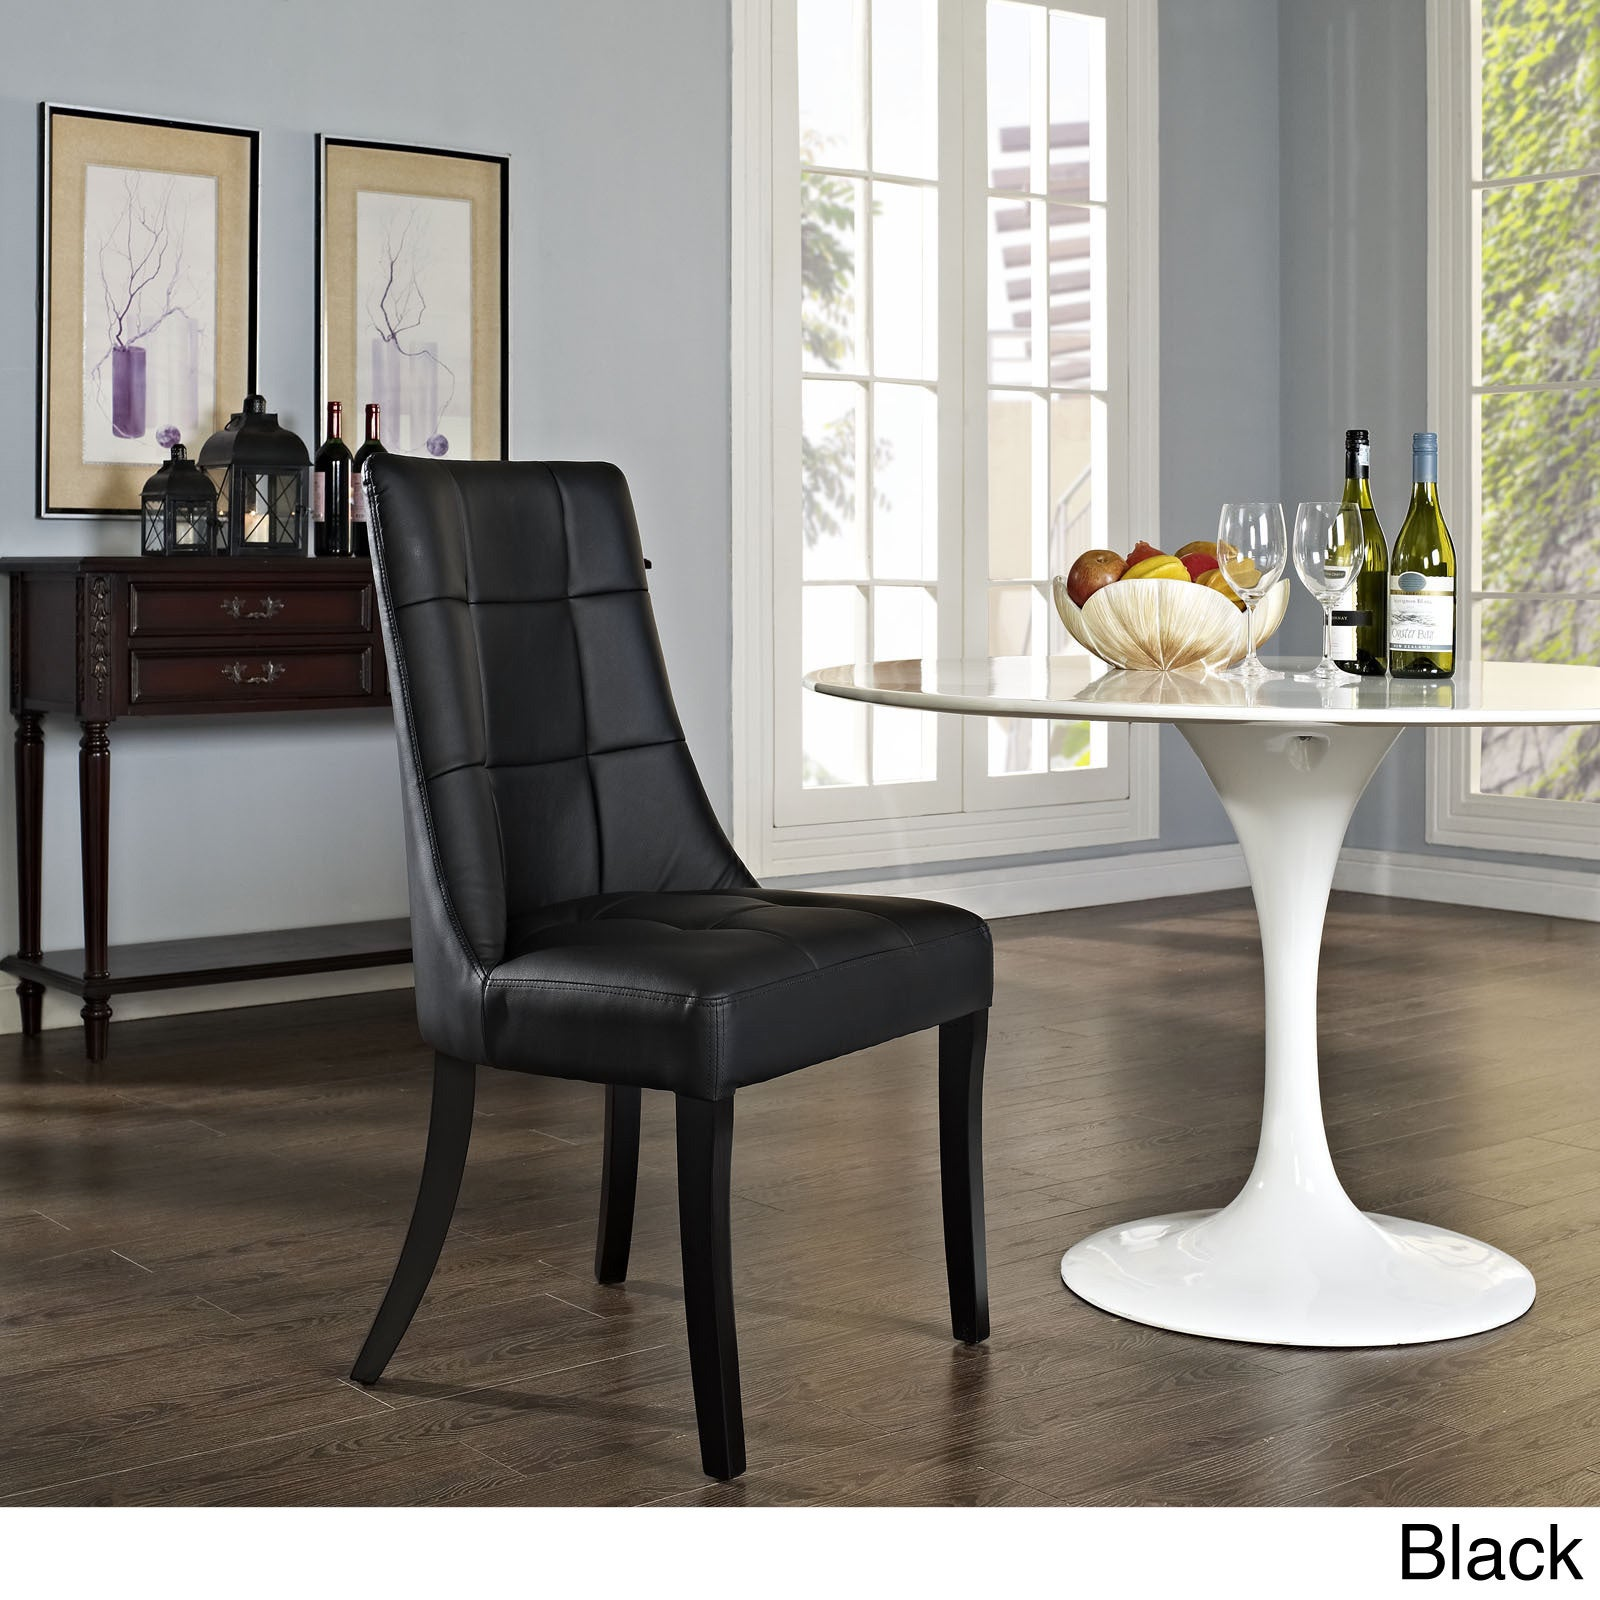 Swell Noblesse Black Vinyl Dining Chair Gmtry Best Dining Table And Chair Ideas Images Gmtryco